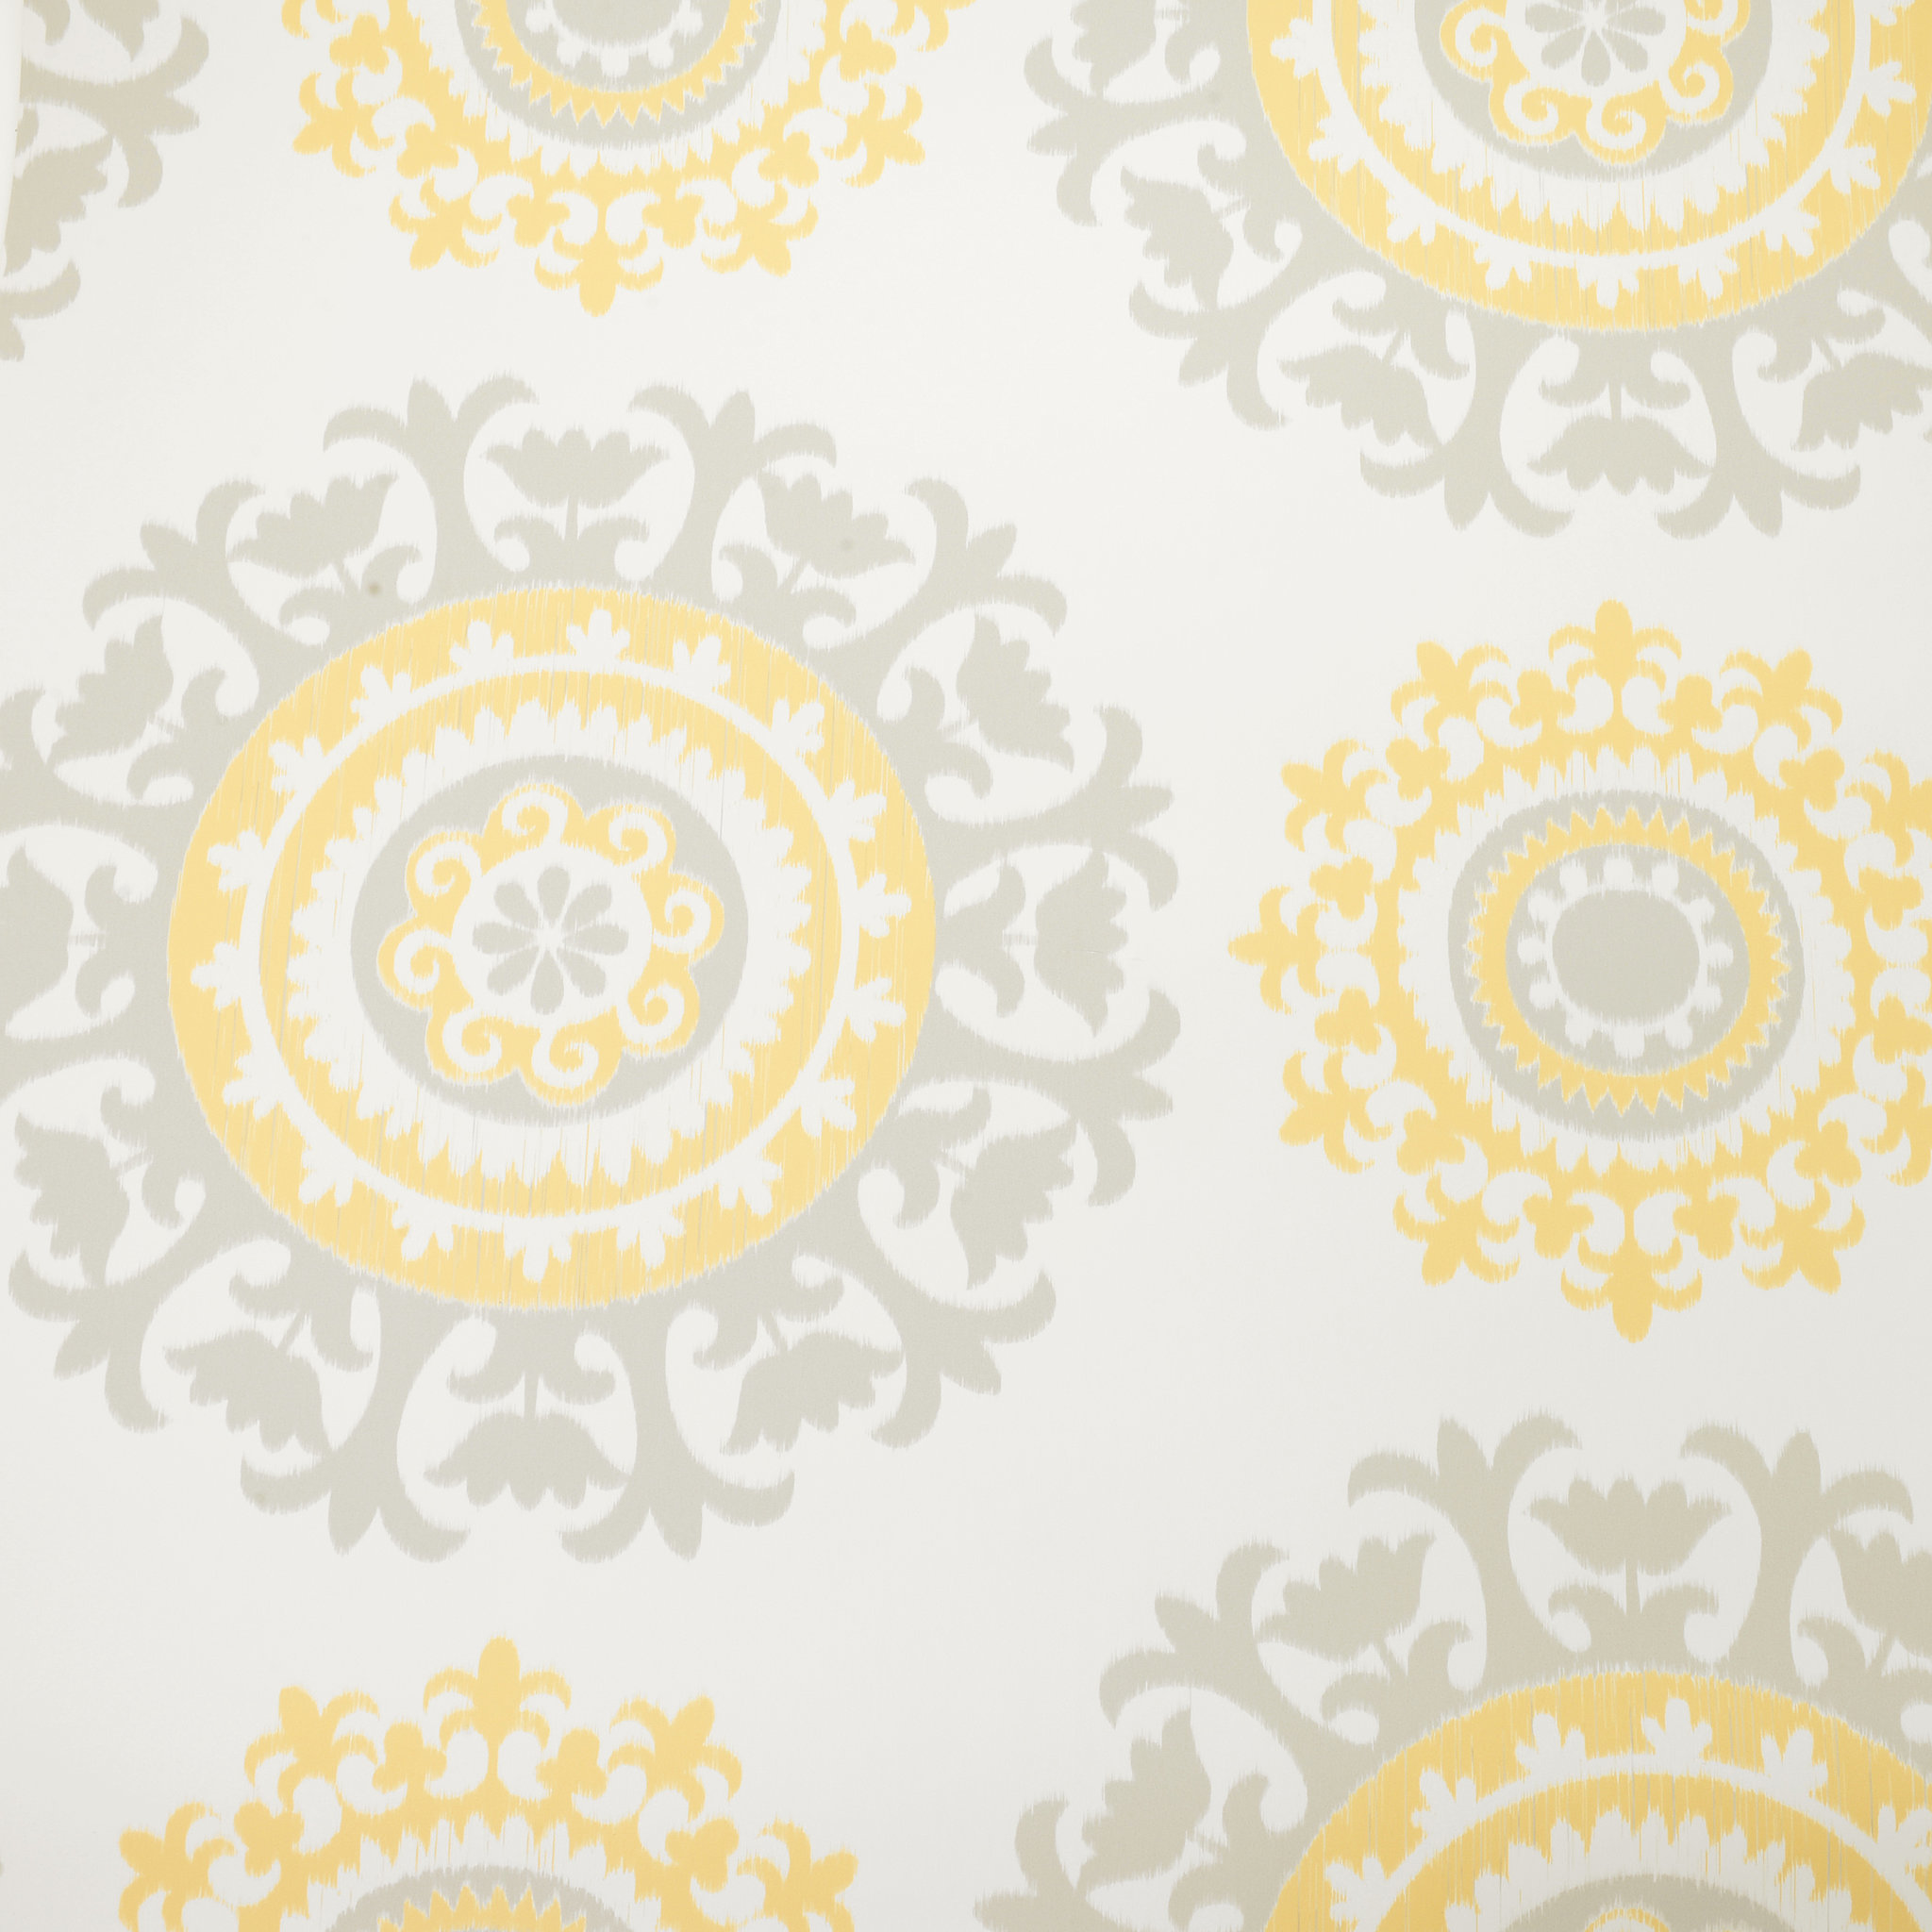 Curtis Home removable wallpaper collection includes a medallion print 2048x2048